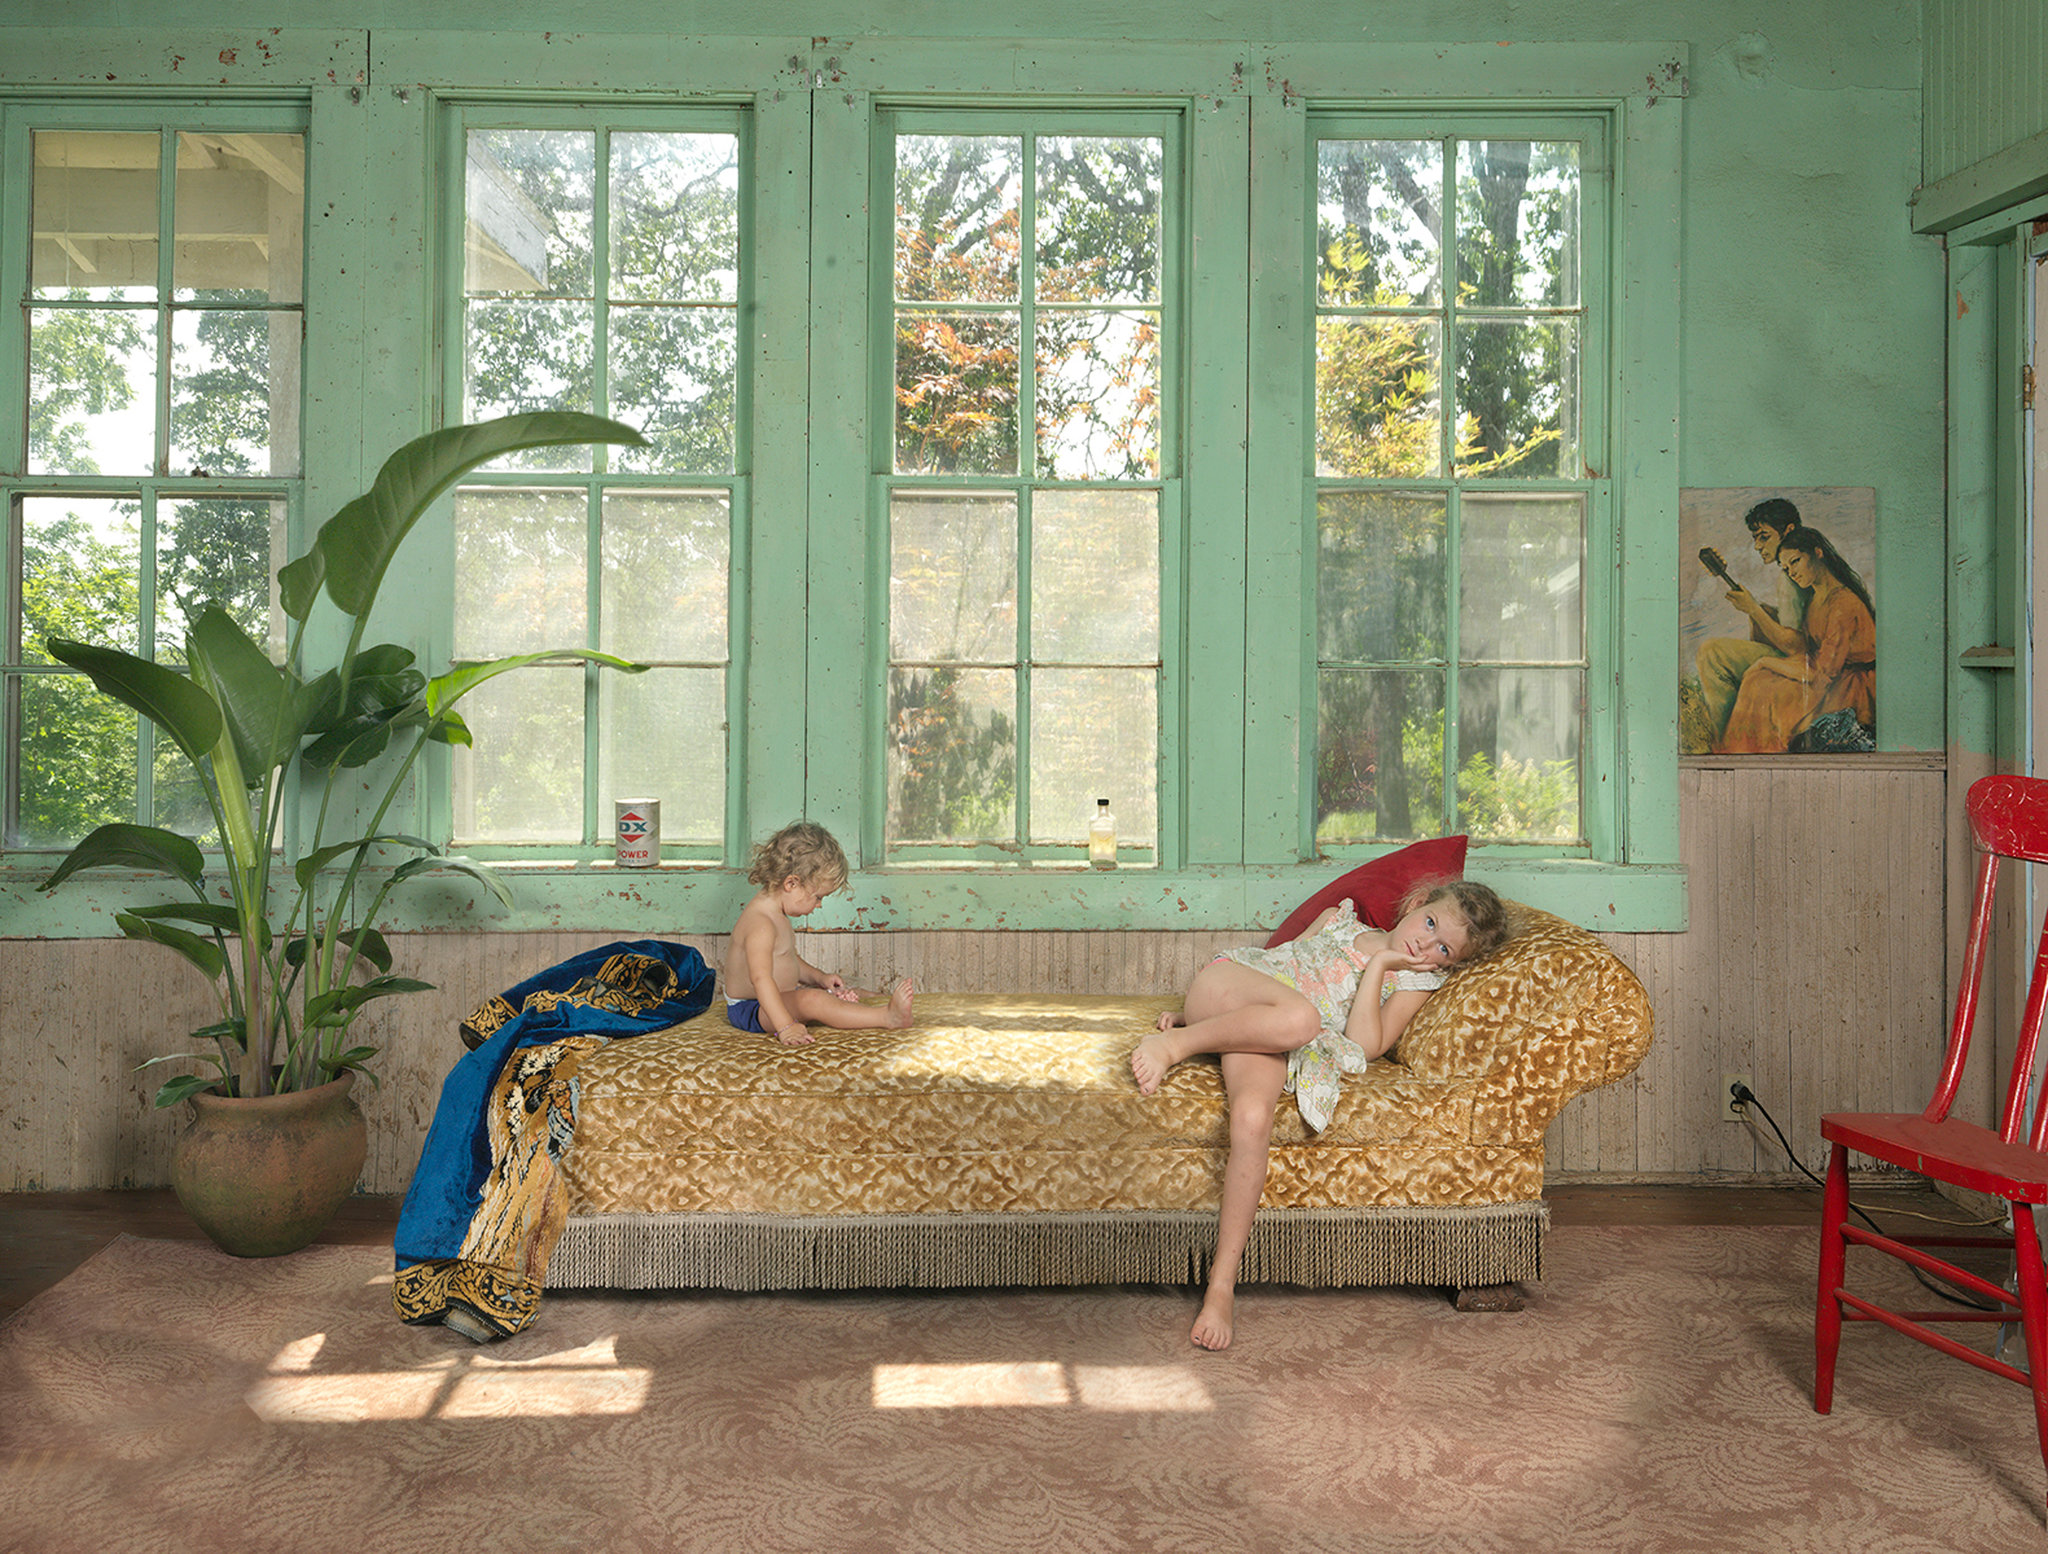 the new york times witty irreverent photos that satirize family living